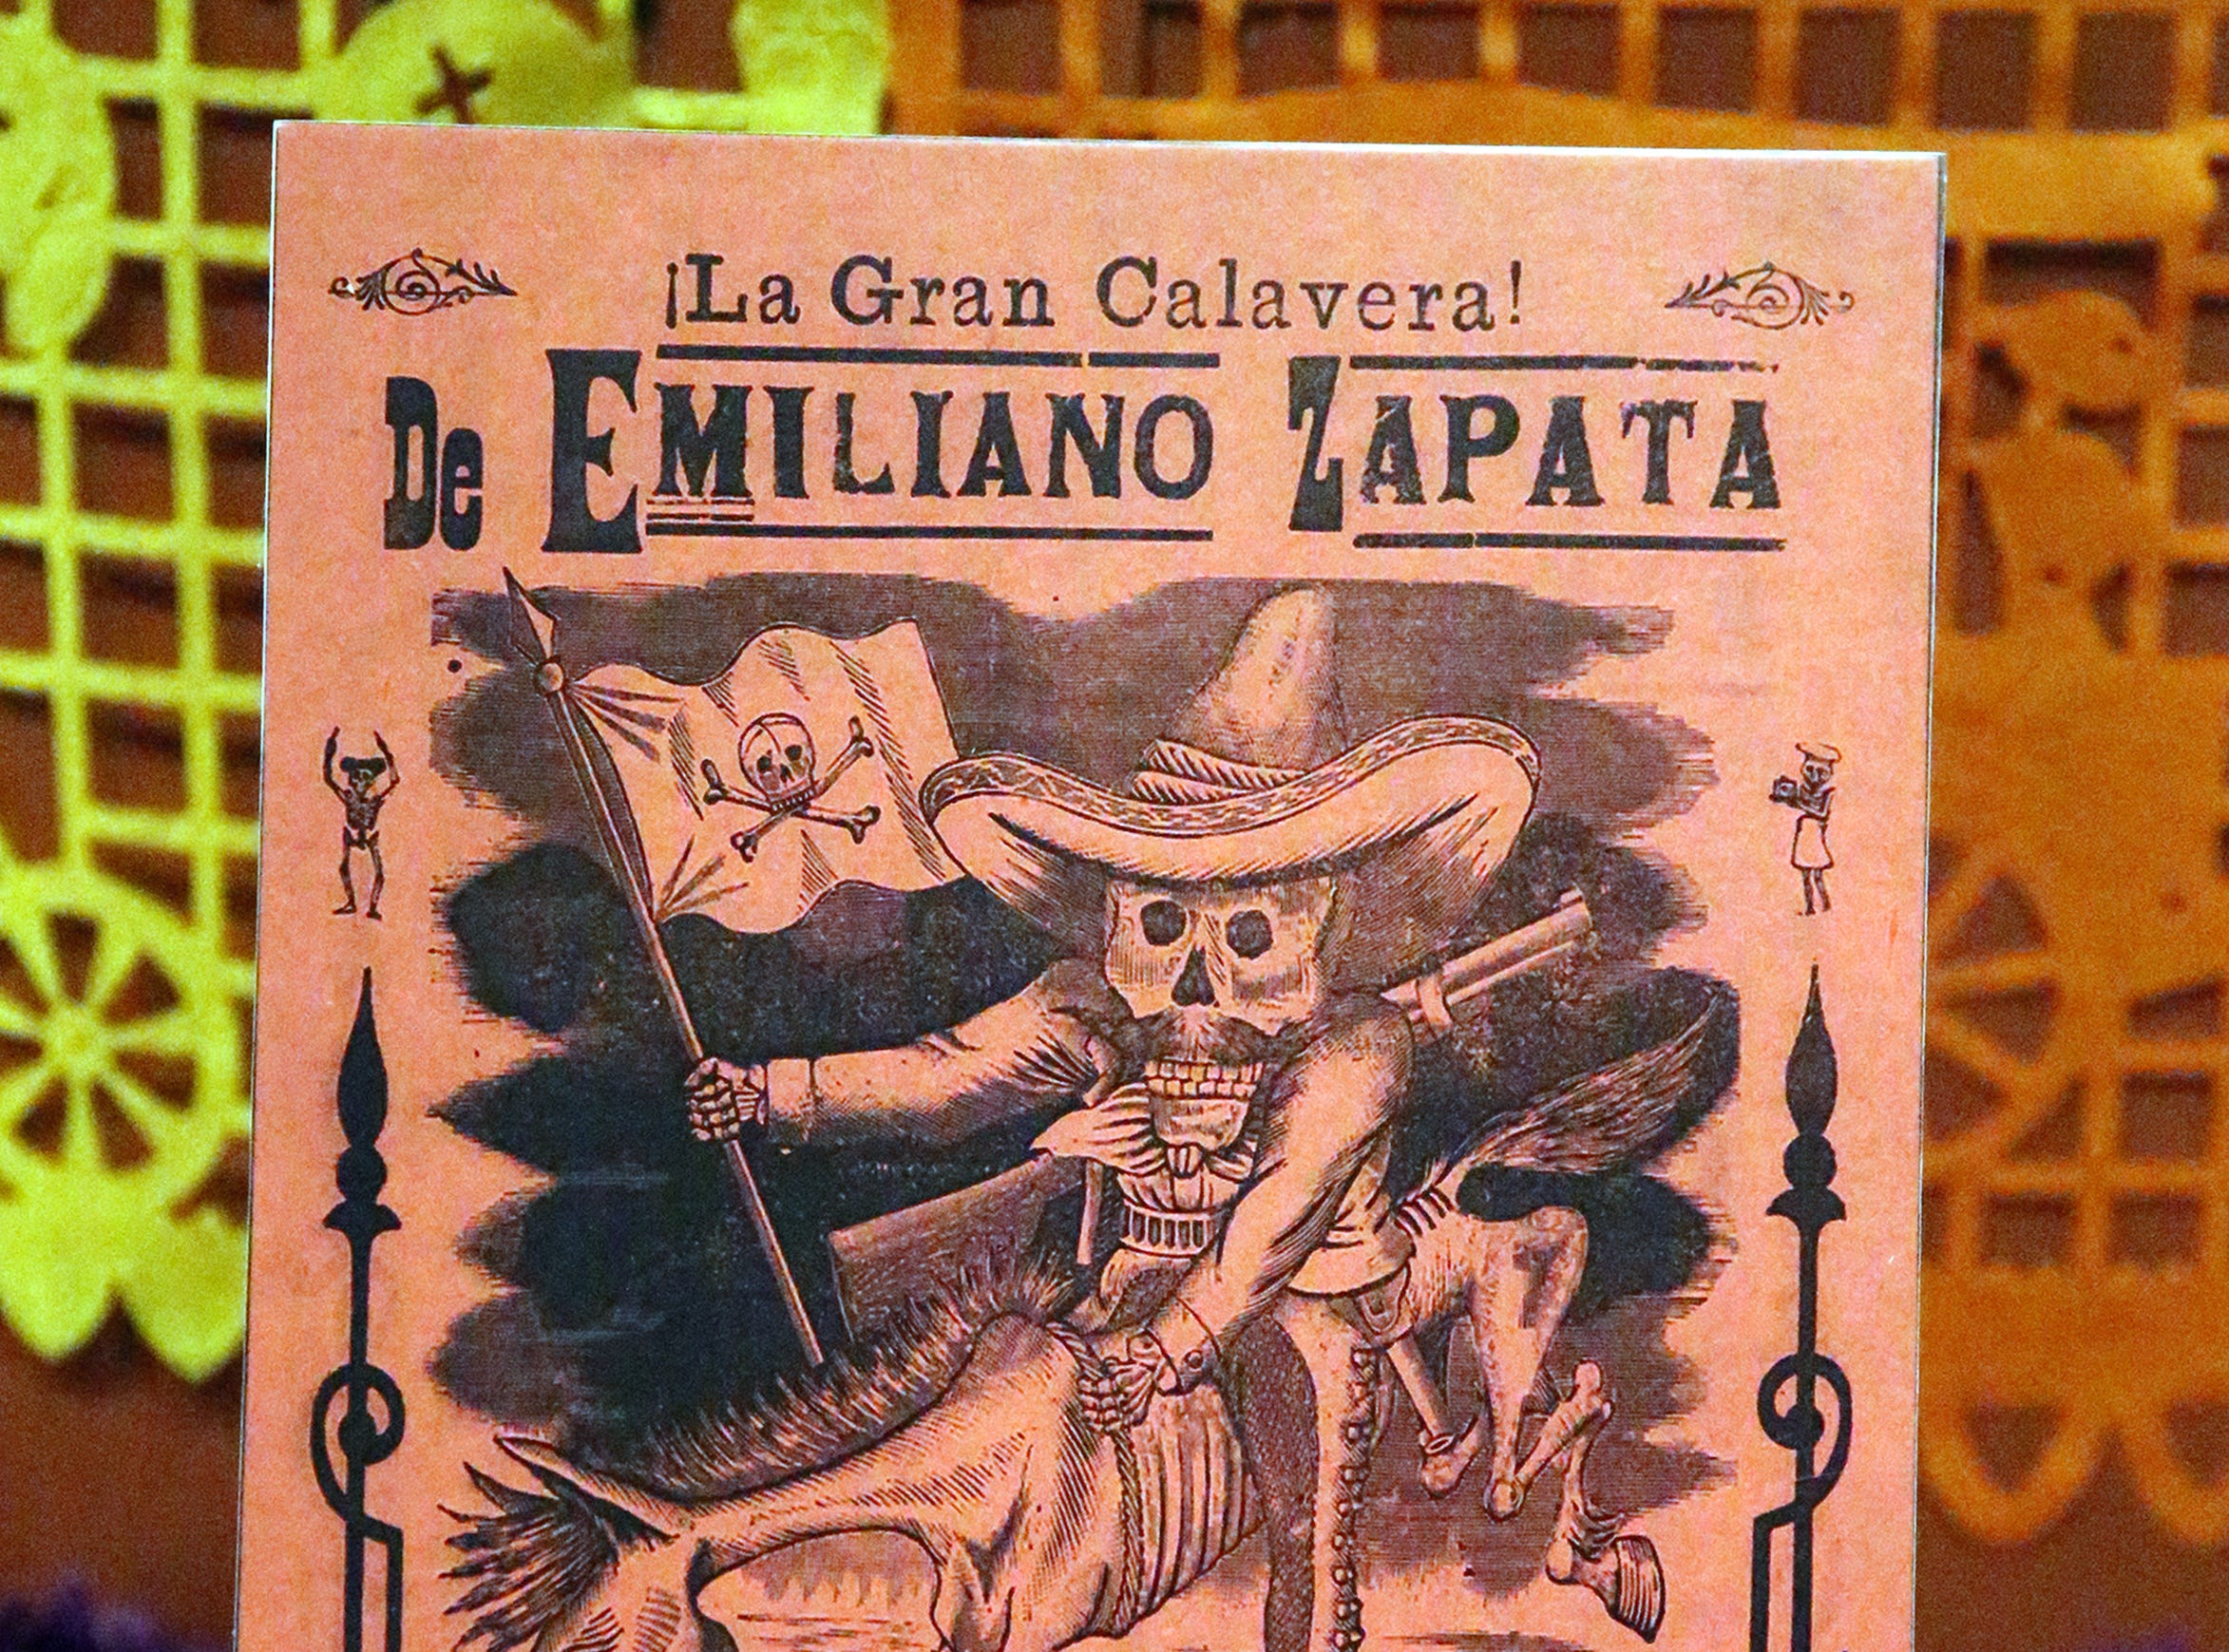 An example of the work of Mexican artist Jose Guadalupe Posada.